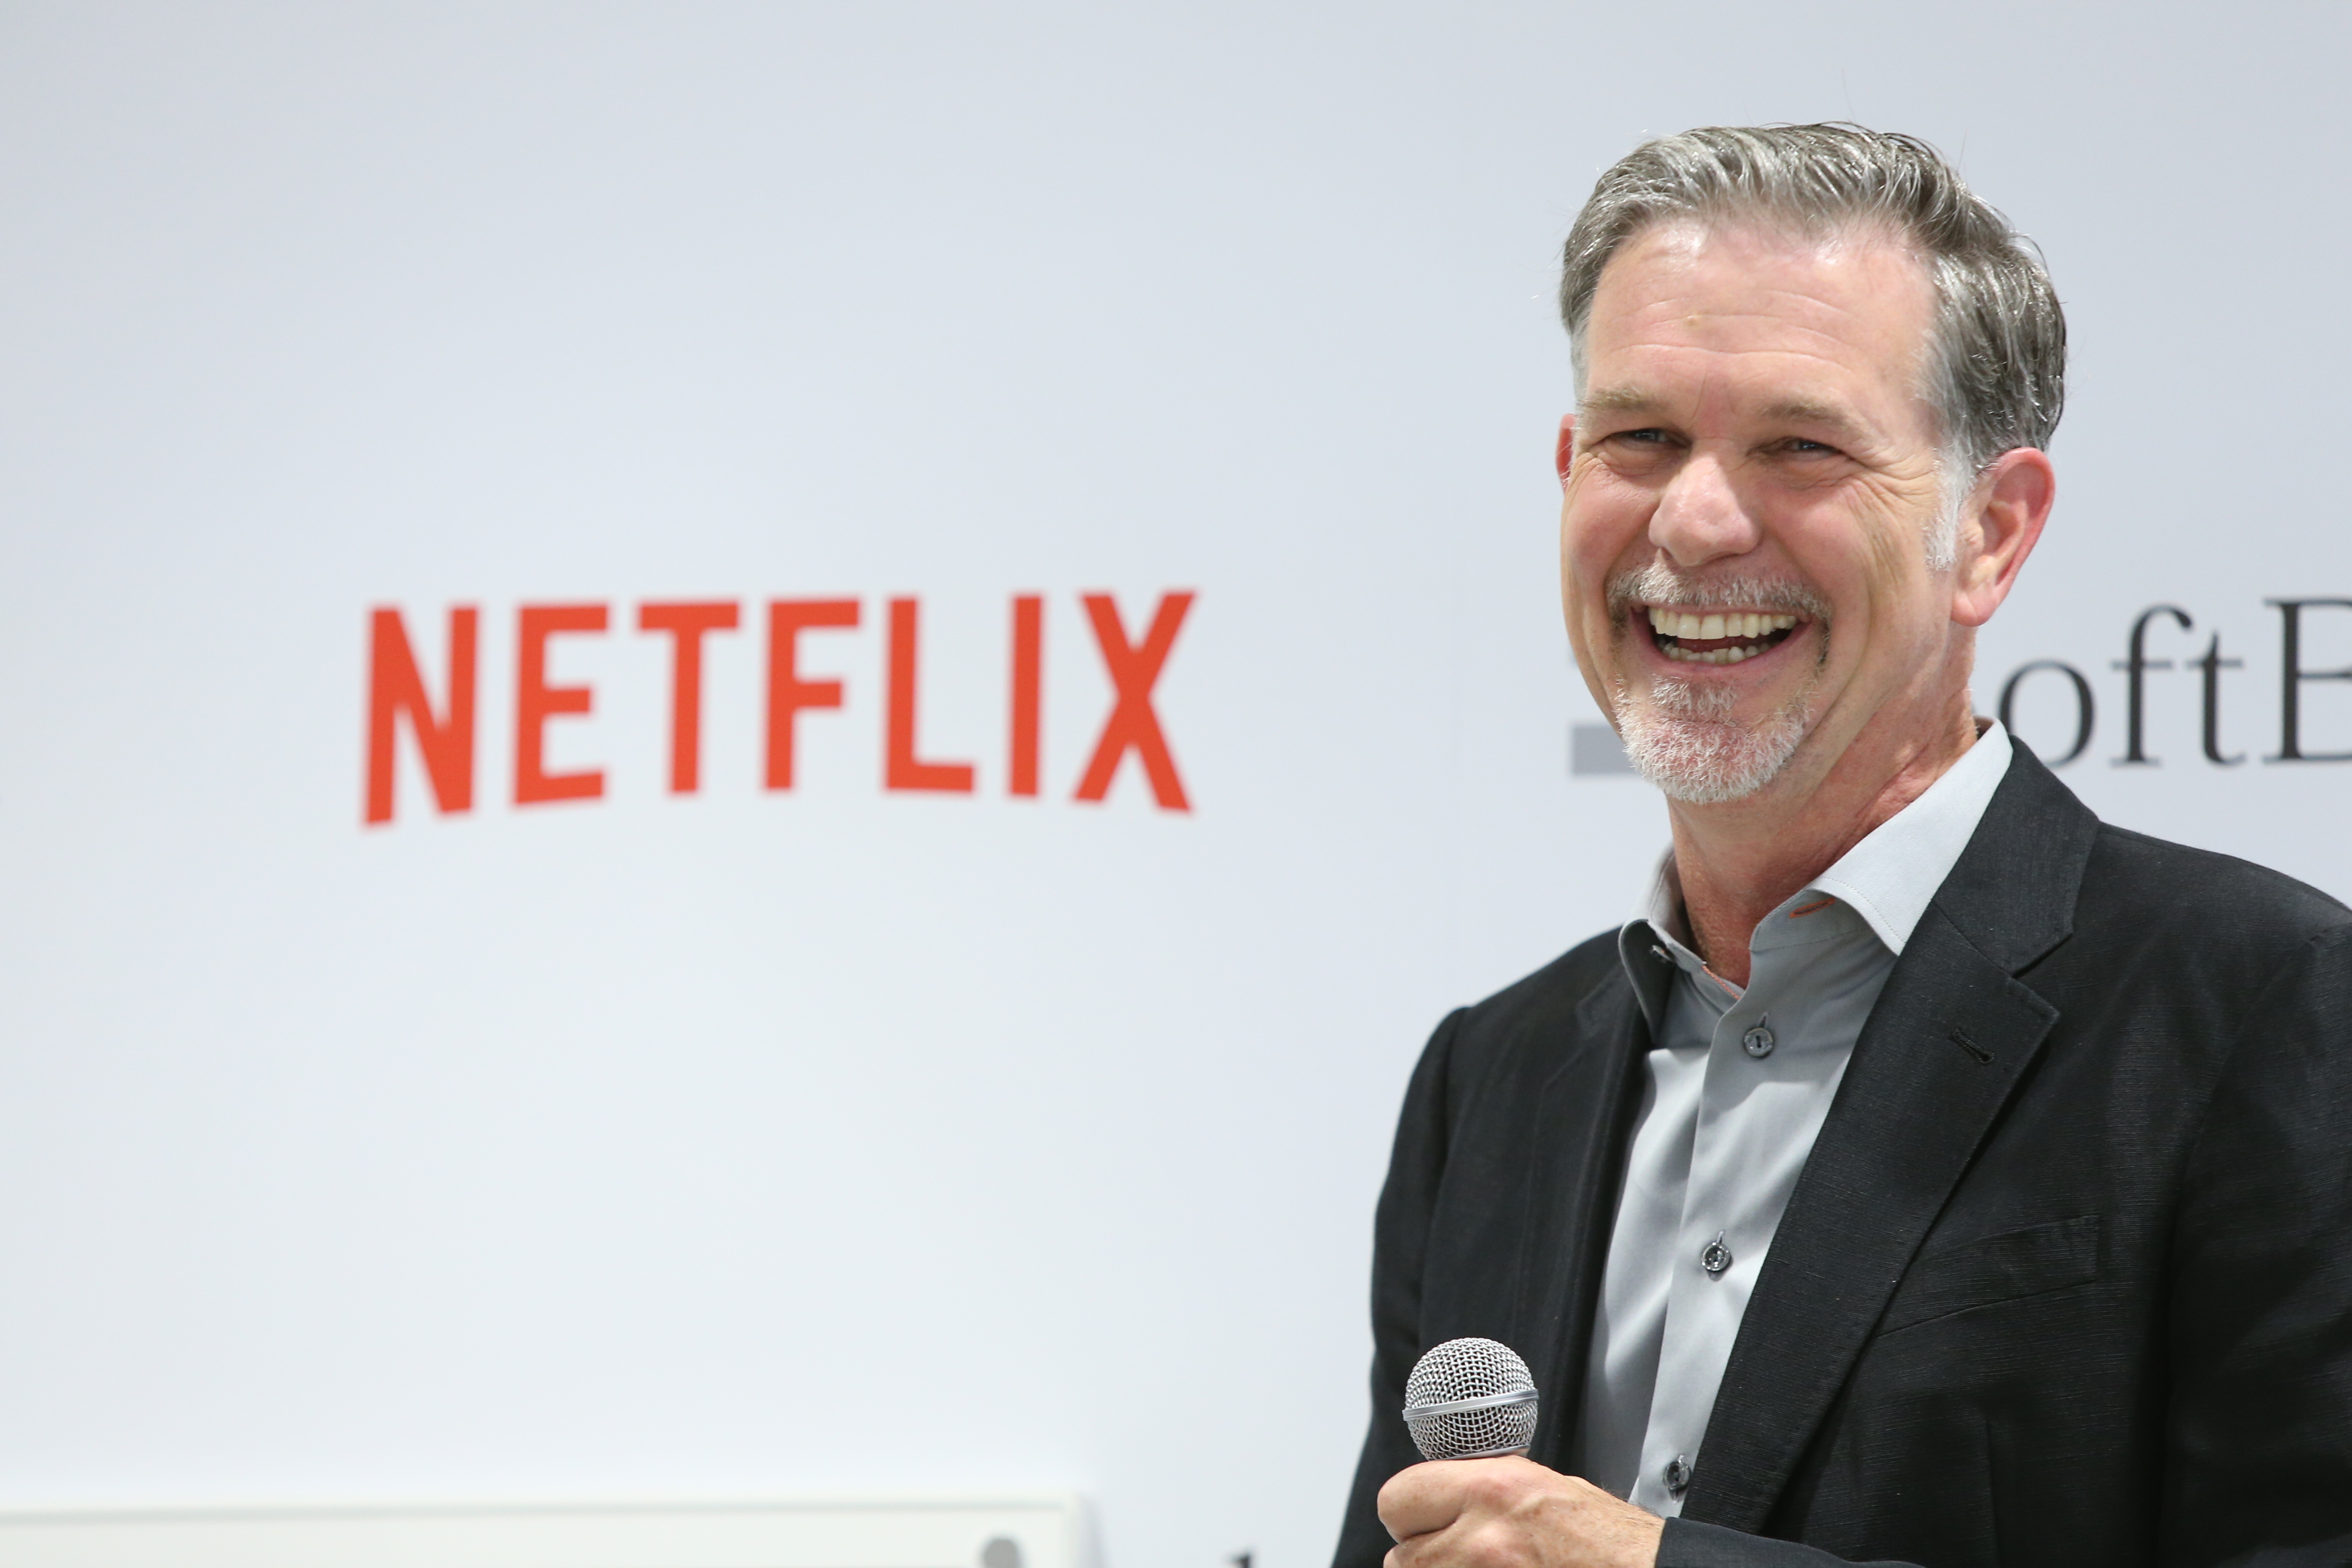 Reed Hastings, founder and CEO of Netflix Inc. attends the launch event for Netflix service in Japan at SoftBank Ginza store on September 2, 2015 in Tokyo, Japan.